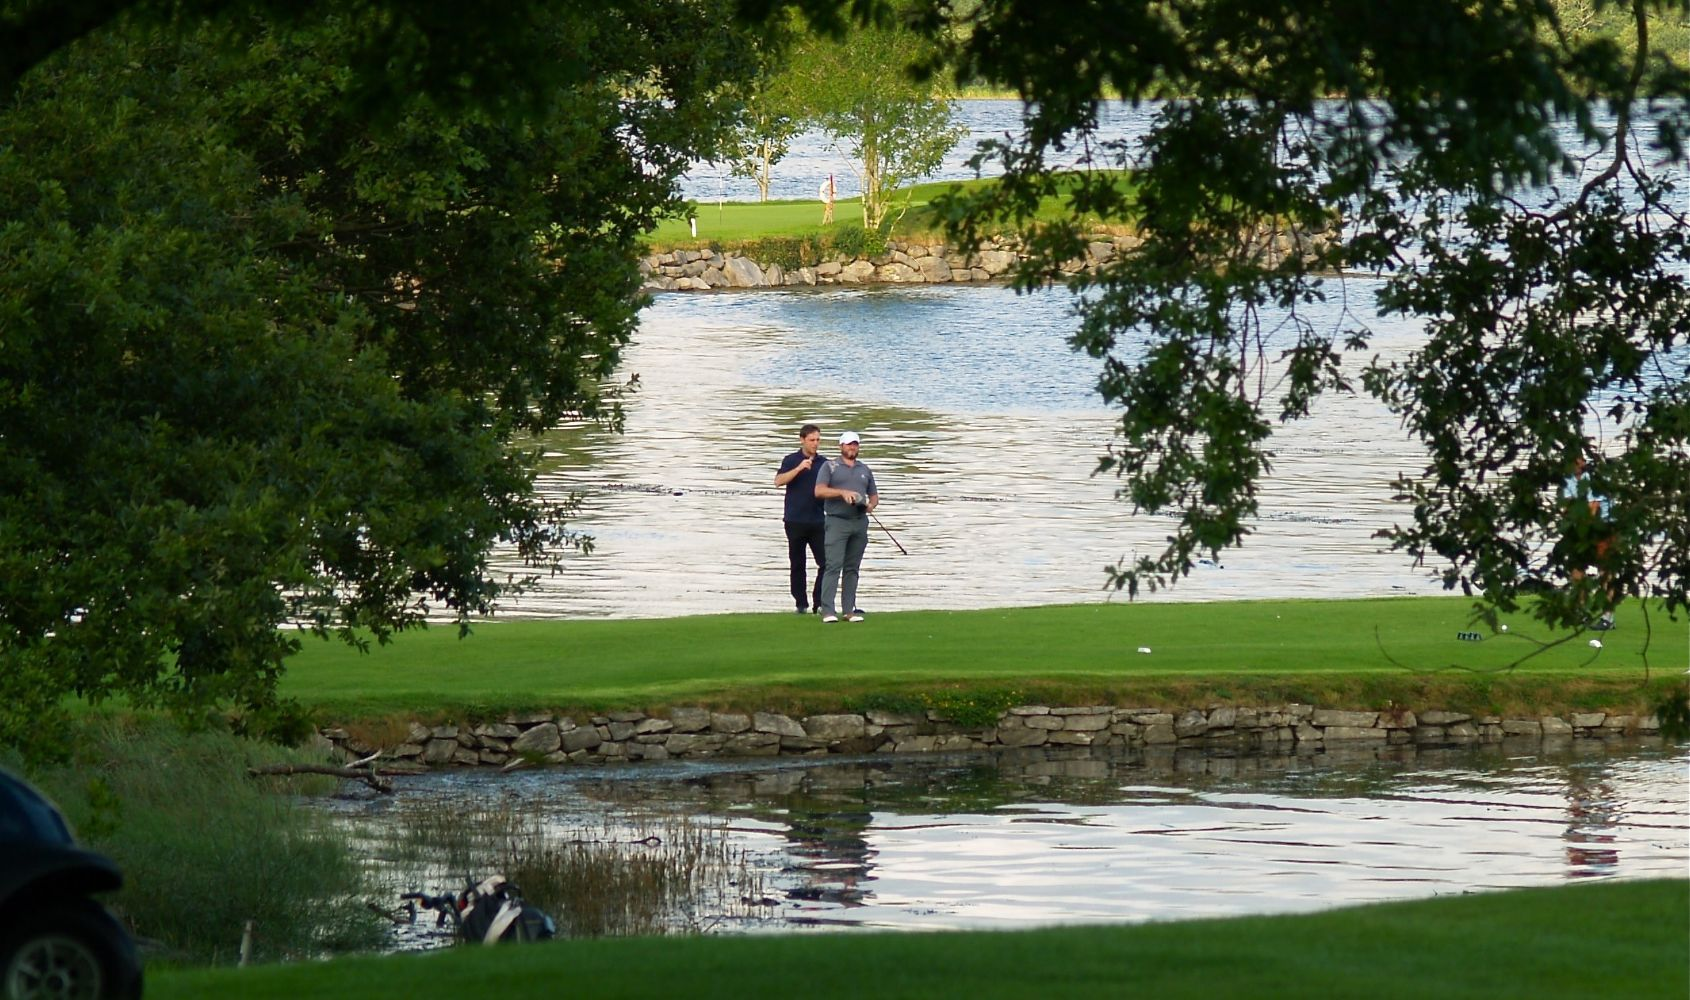 2 golfers wait on the 18th tee at Kenmare Golf club